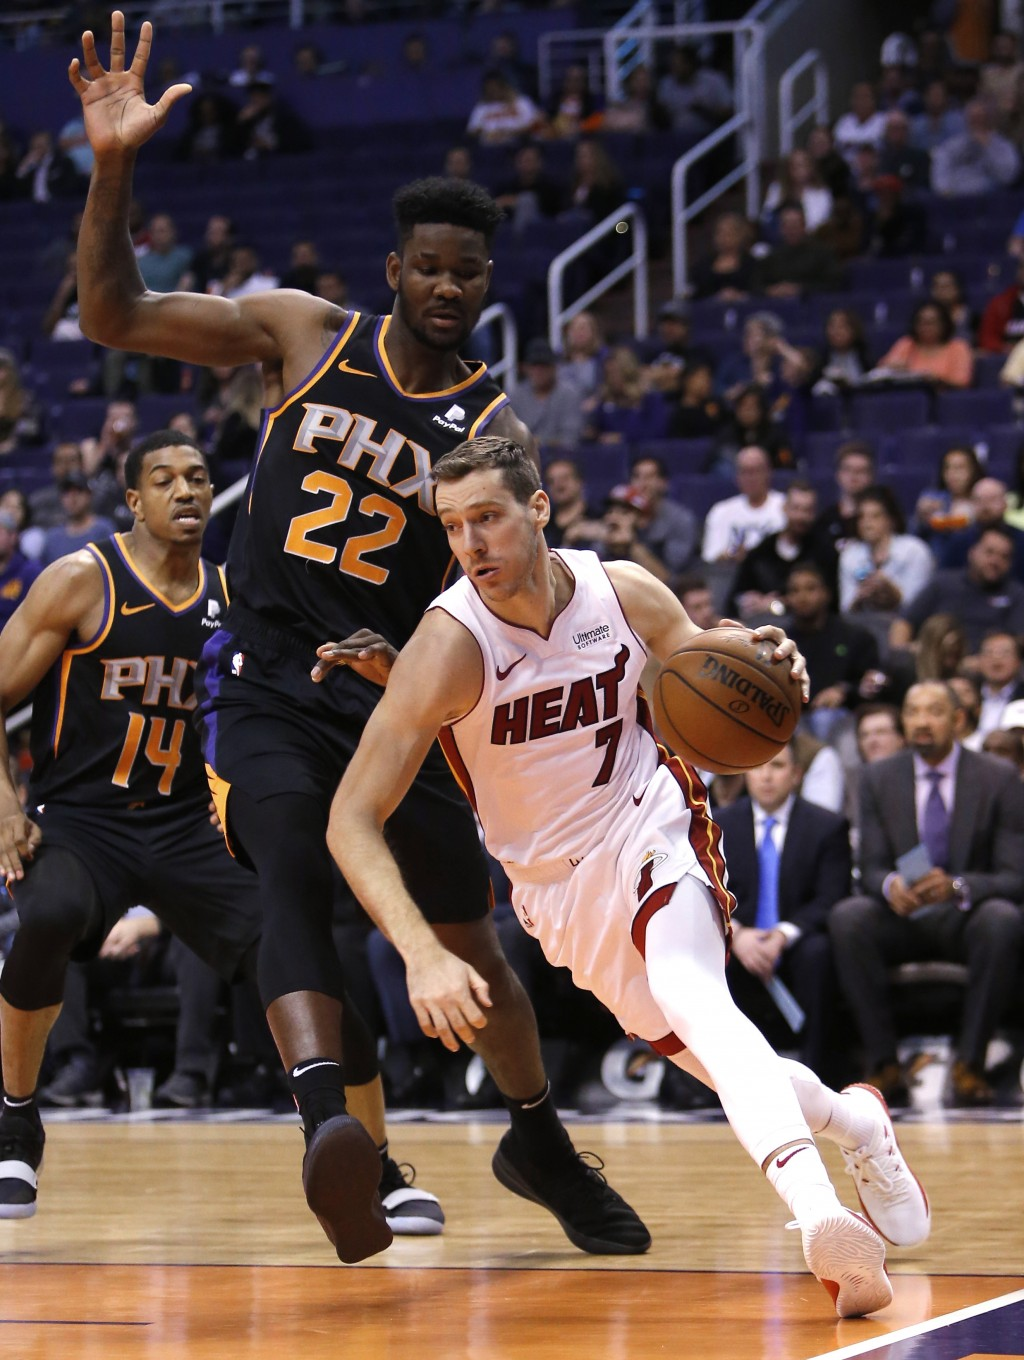 Miami Heat guard Goran Dragic (7) drives on Phoenix Suns center Deandre Ayton during the first half of an NBA basketball game Friday, Dec. 7, 2018, in